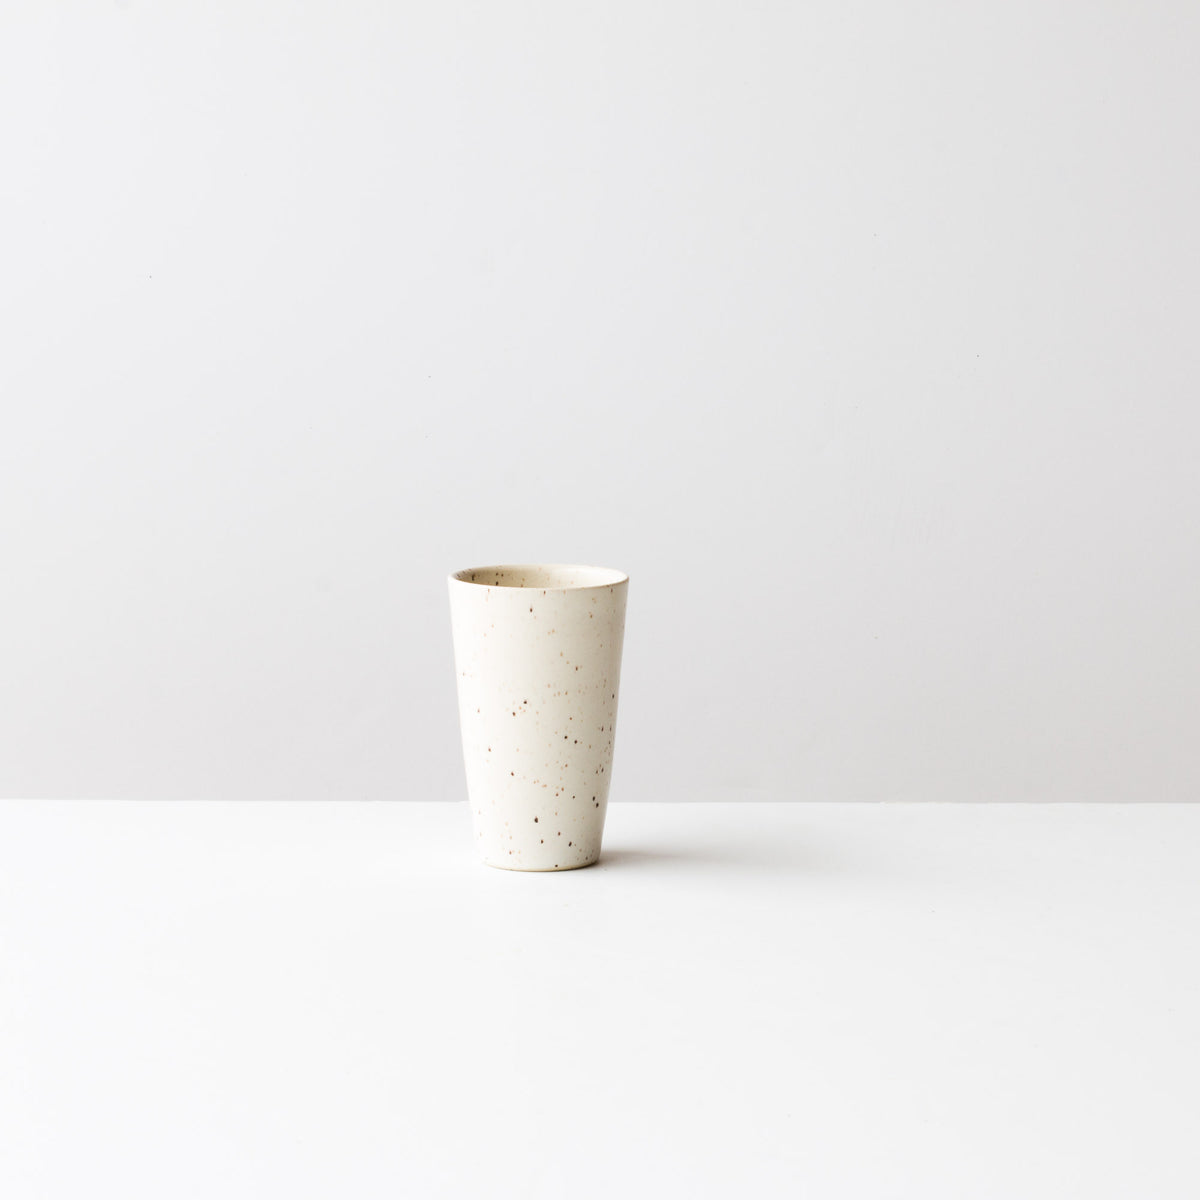 Speckled Off-White -  Handmade Small Ceramic Goblet / Tumbler - Sold by Chic & Basta